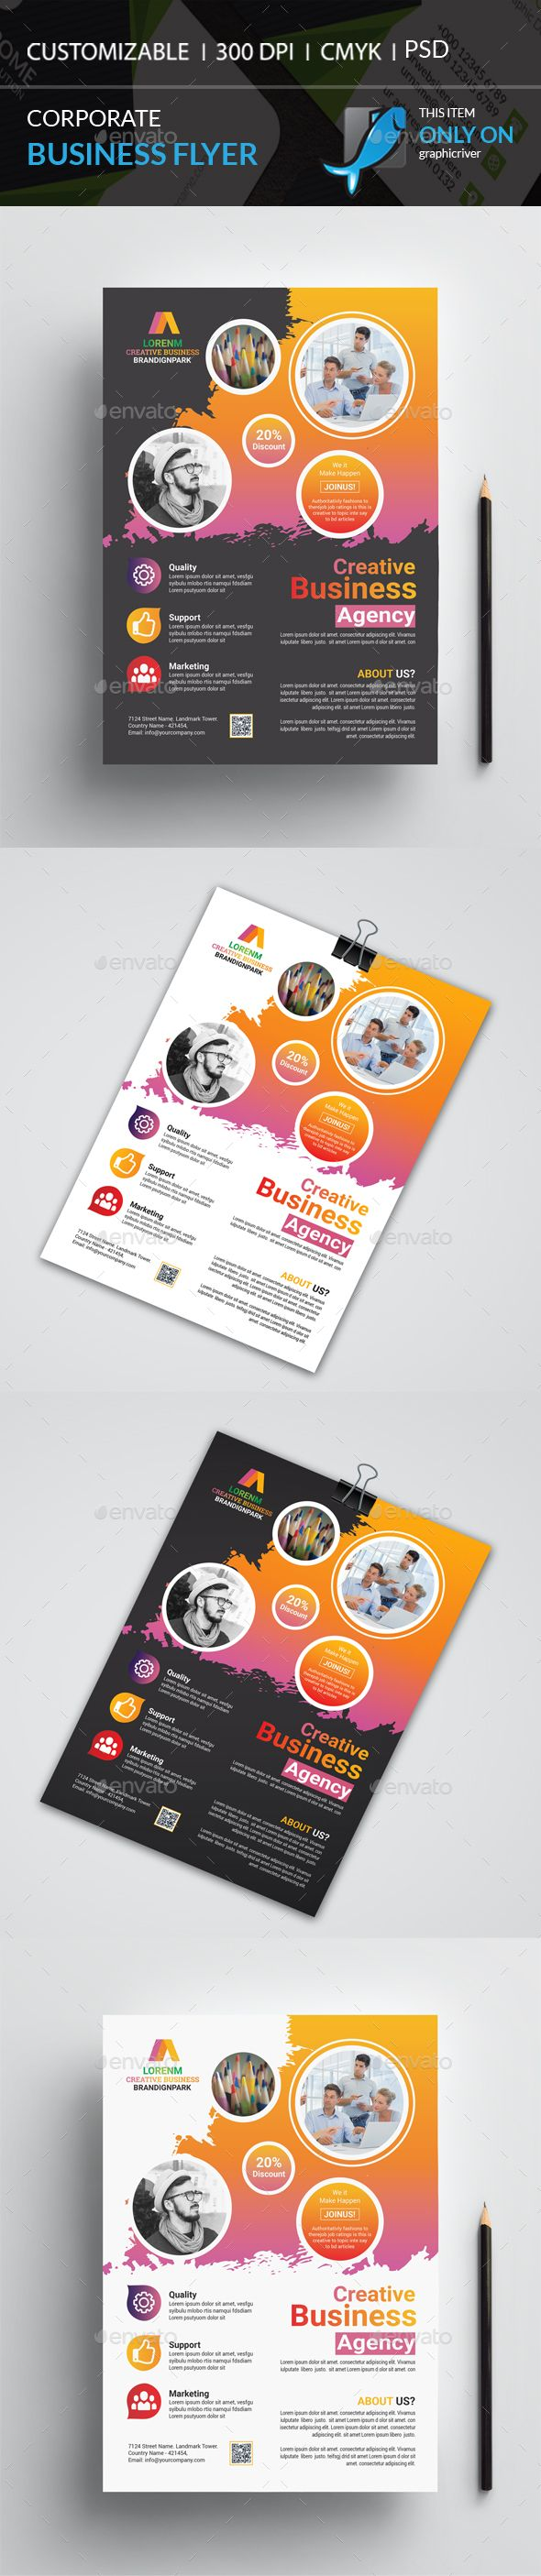 Corporate Flyer Flyers Print Templates (With images